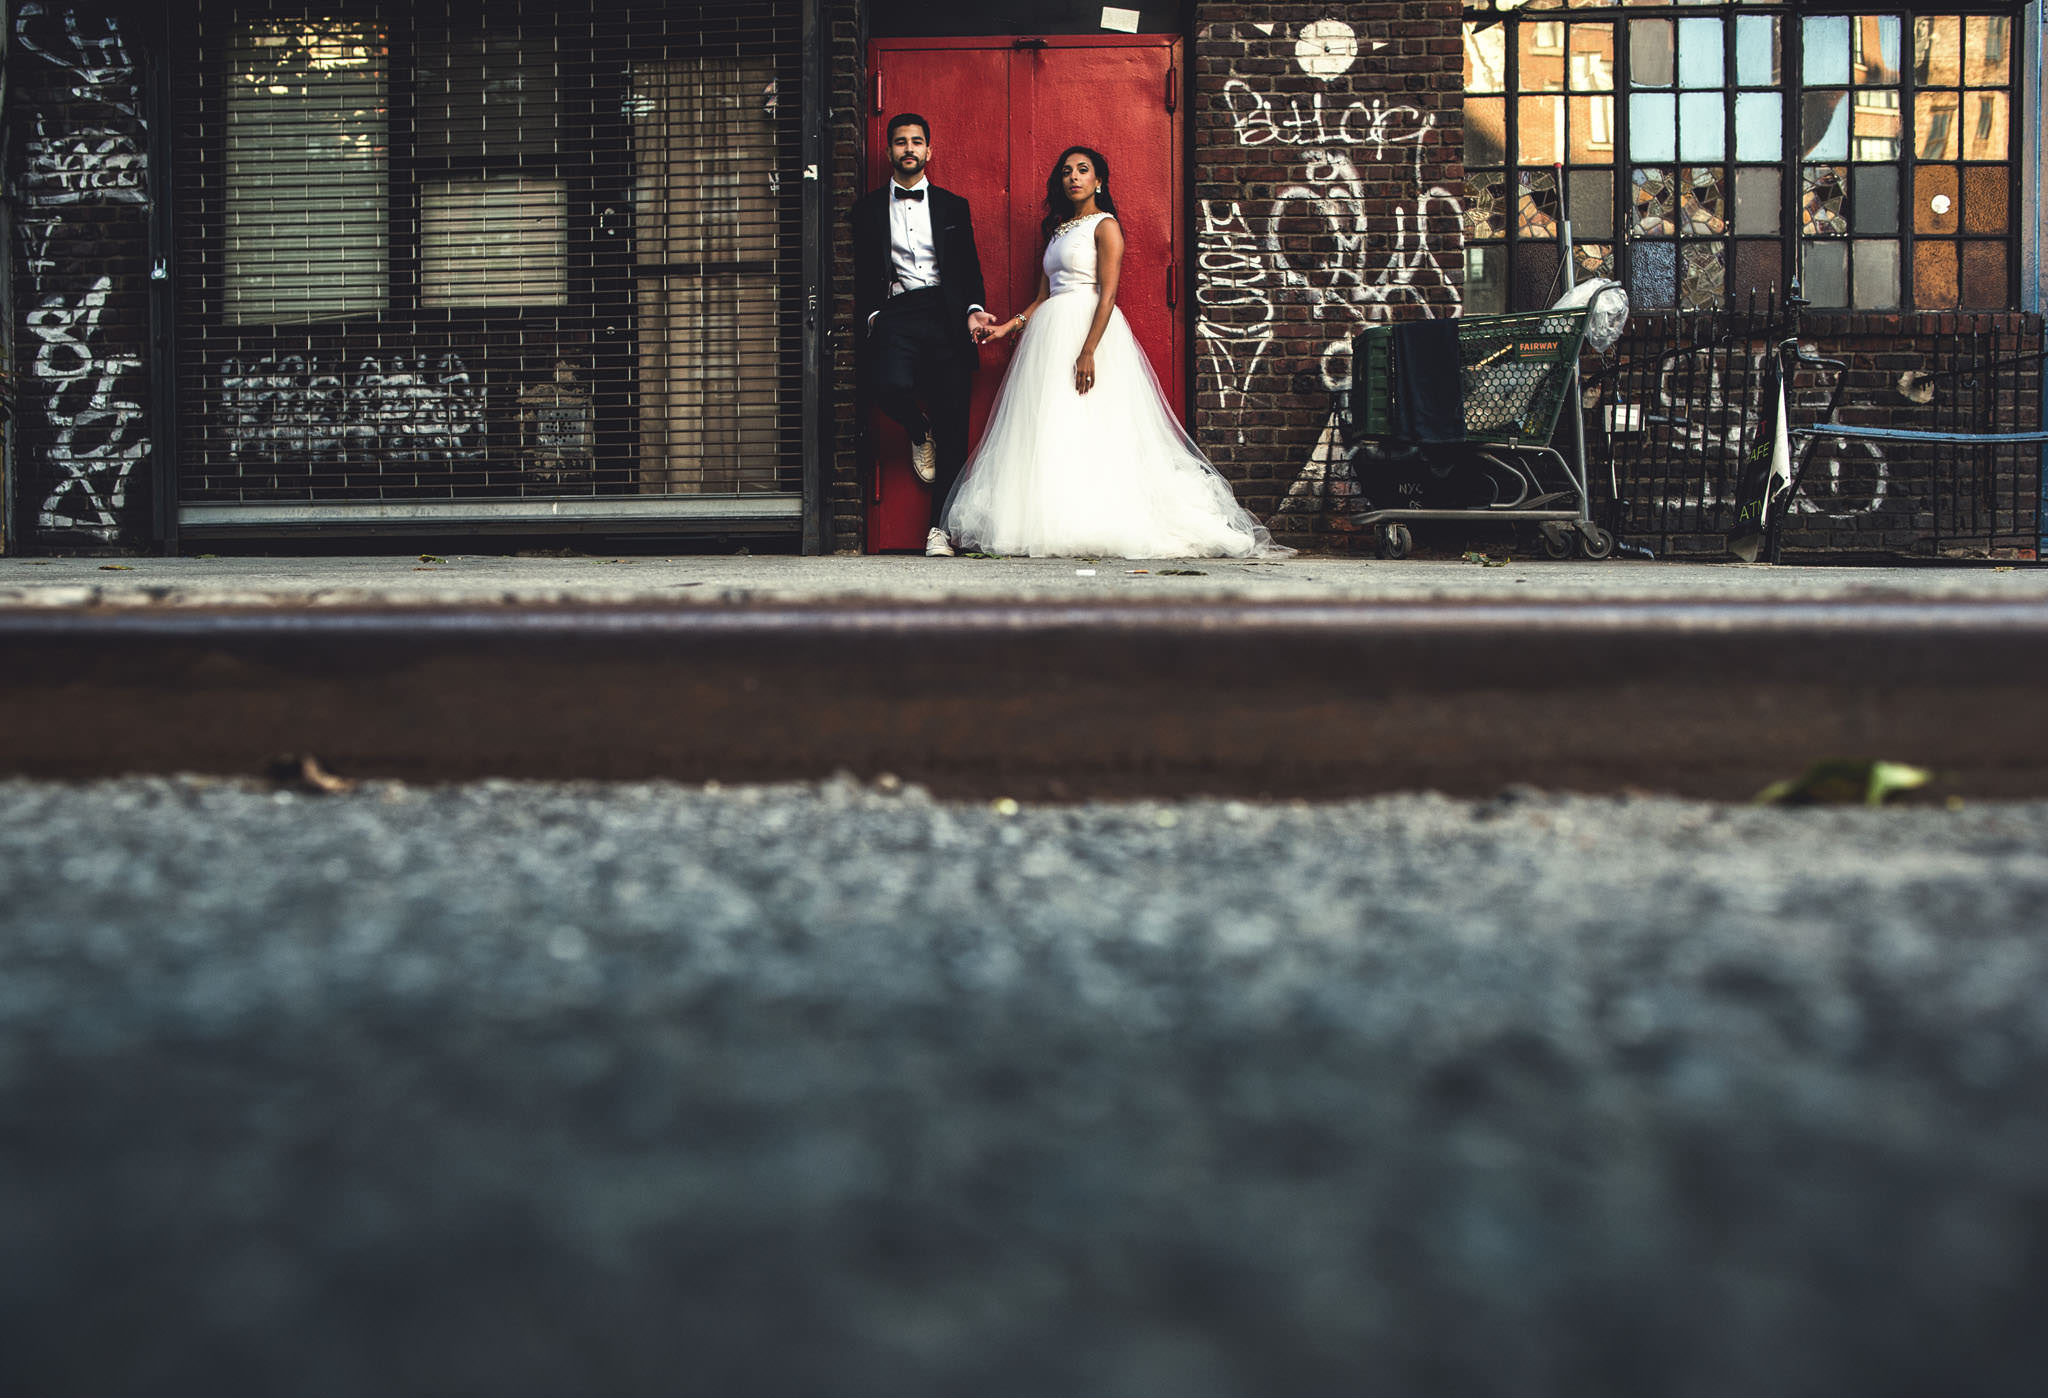 brooklyn, NY wedding photographer